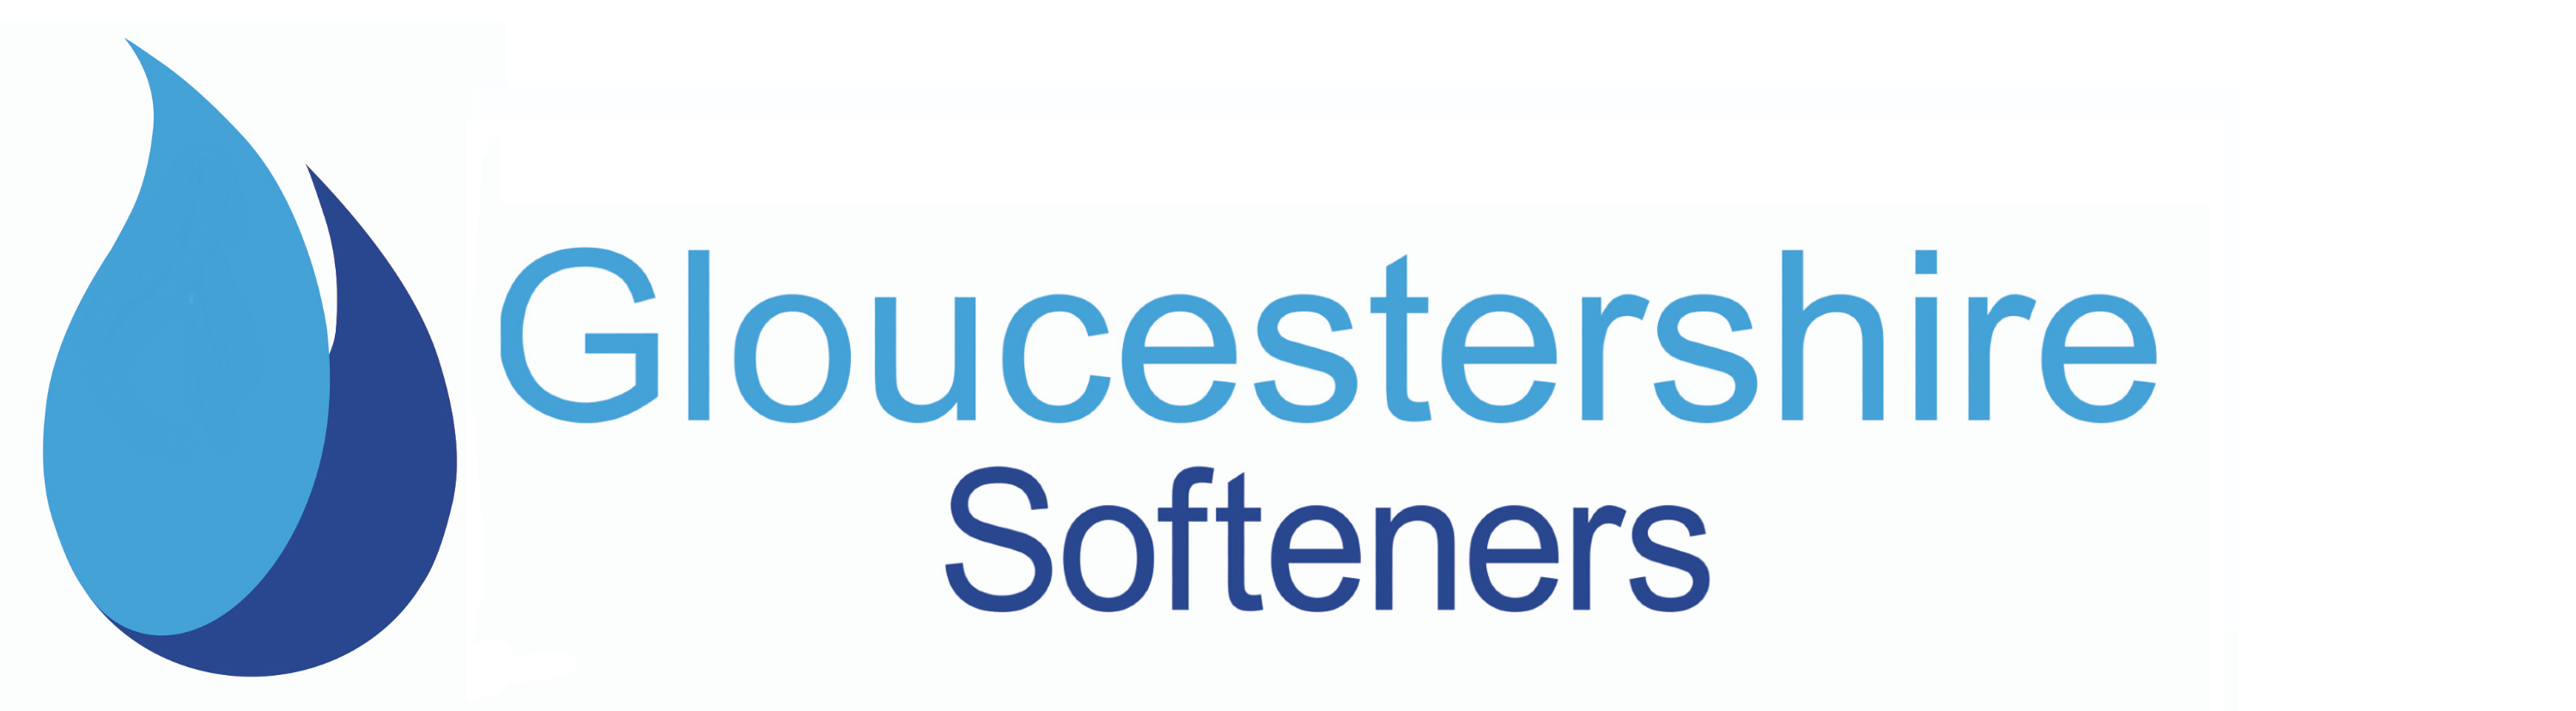 Gloucestershire Softeners